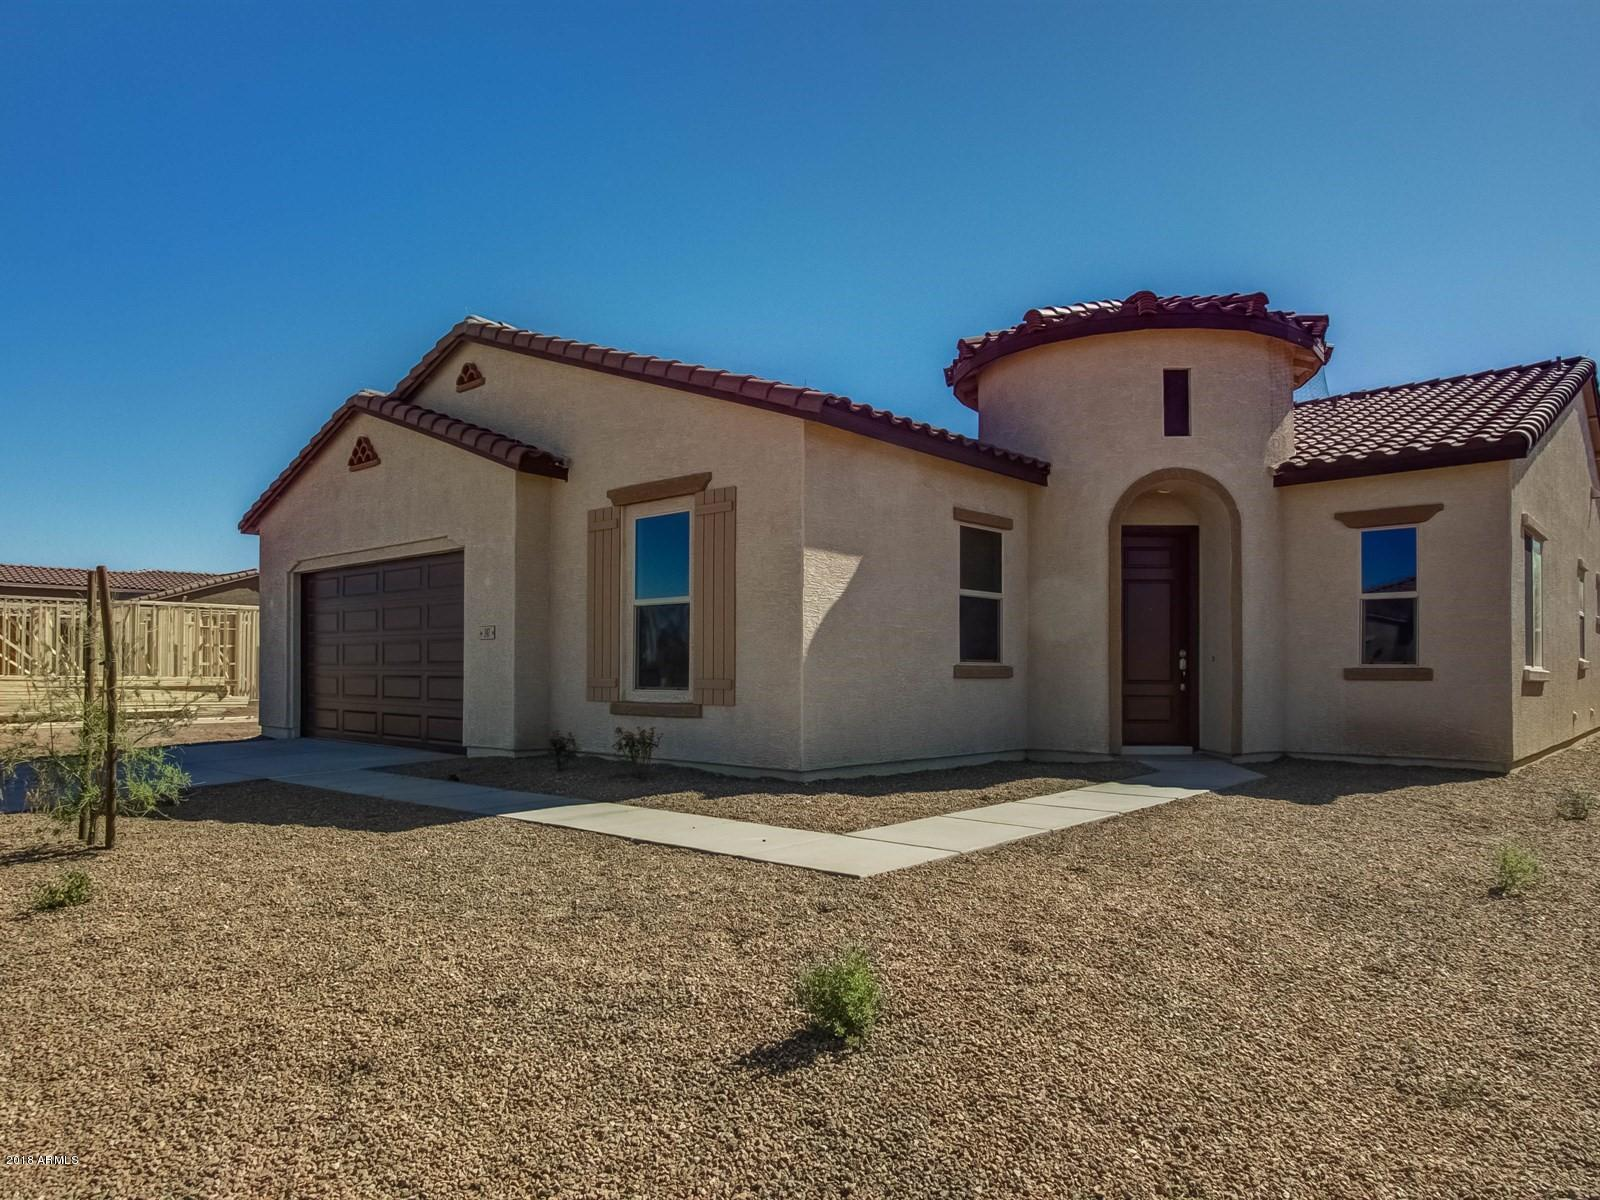 Photo for 247 N Rainbow Way, Casa Grande, AZ 85194 (MLS # 5675699)